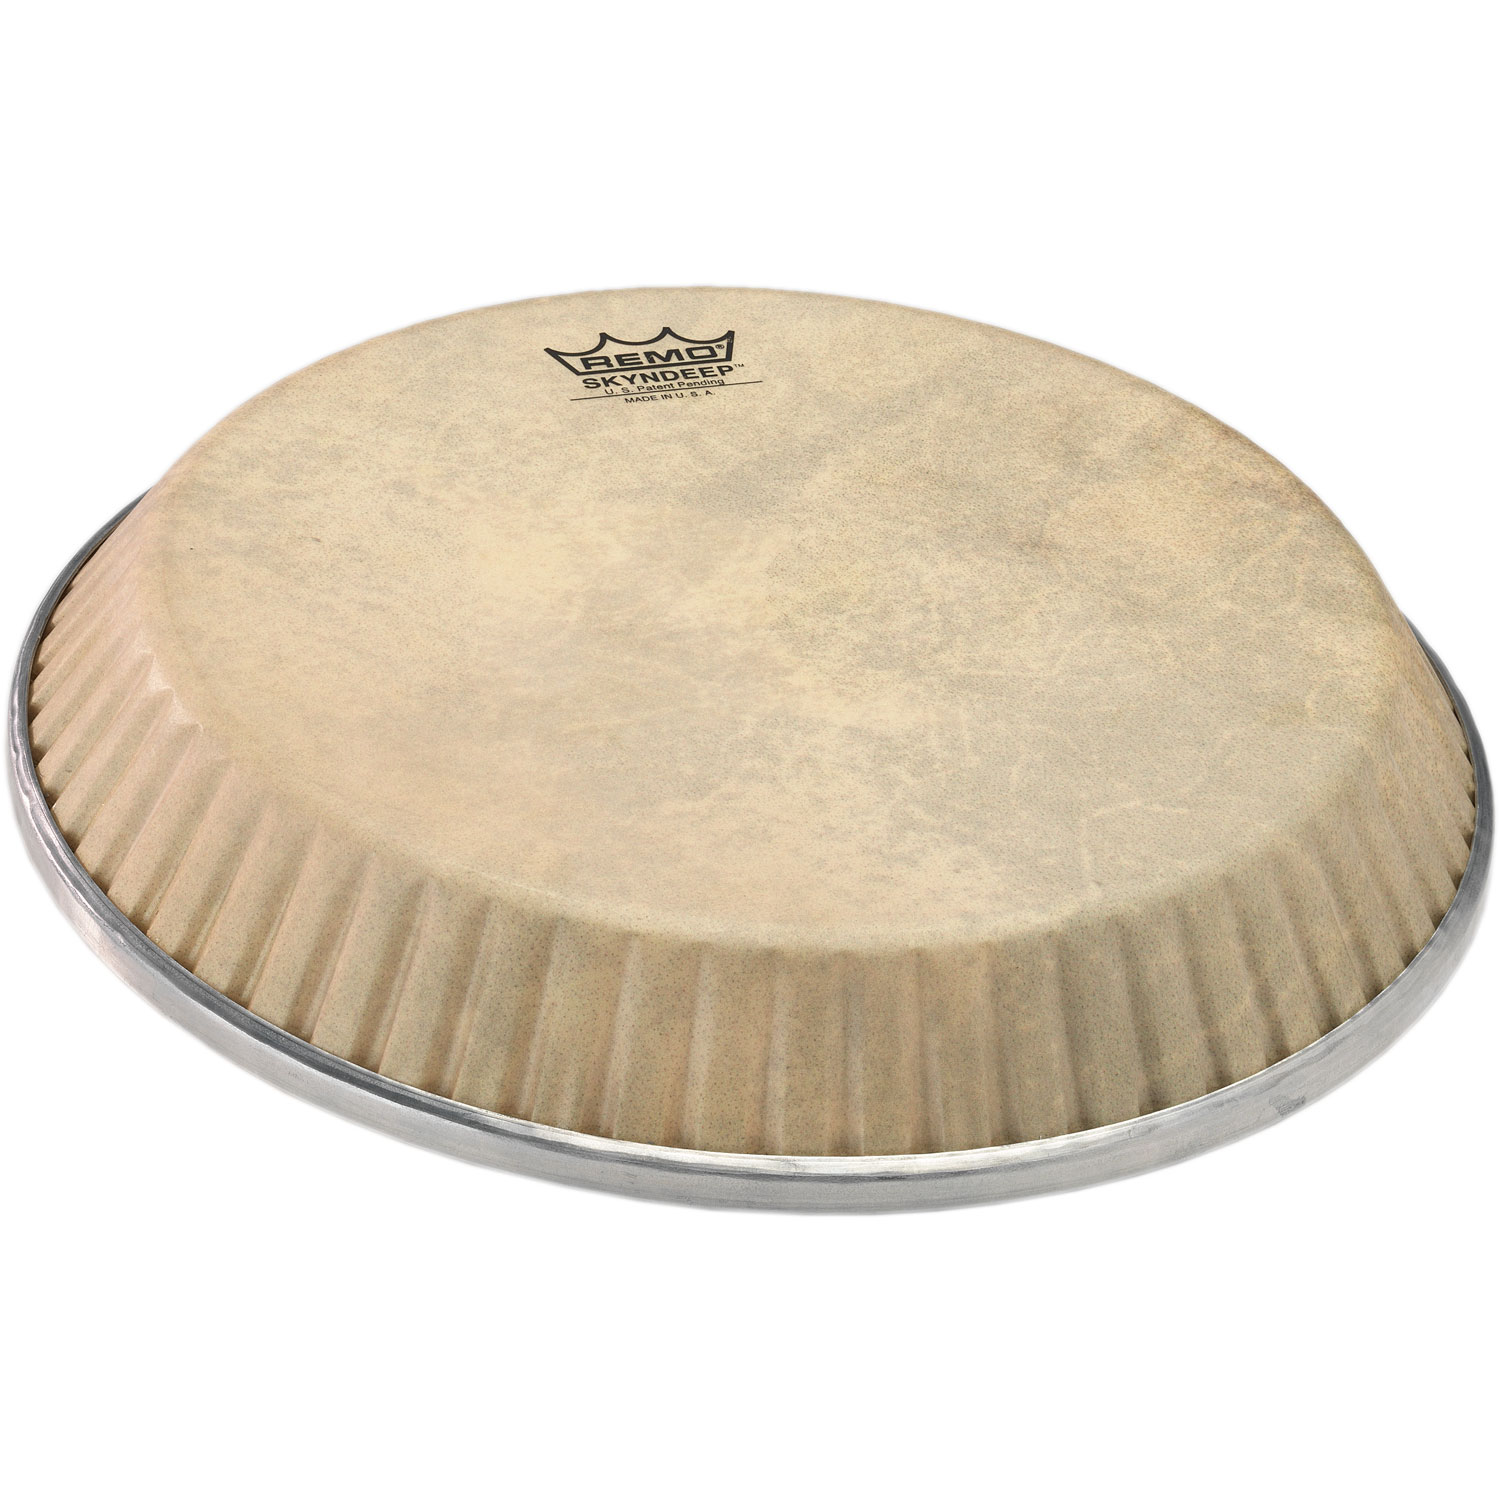 "Remo 12.5"" Symmetry Skyndeep Conga Drum Head (D3 Collar) with Calfskin Graphic"